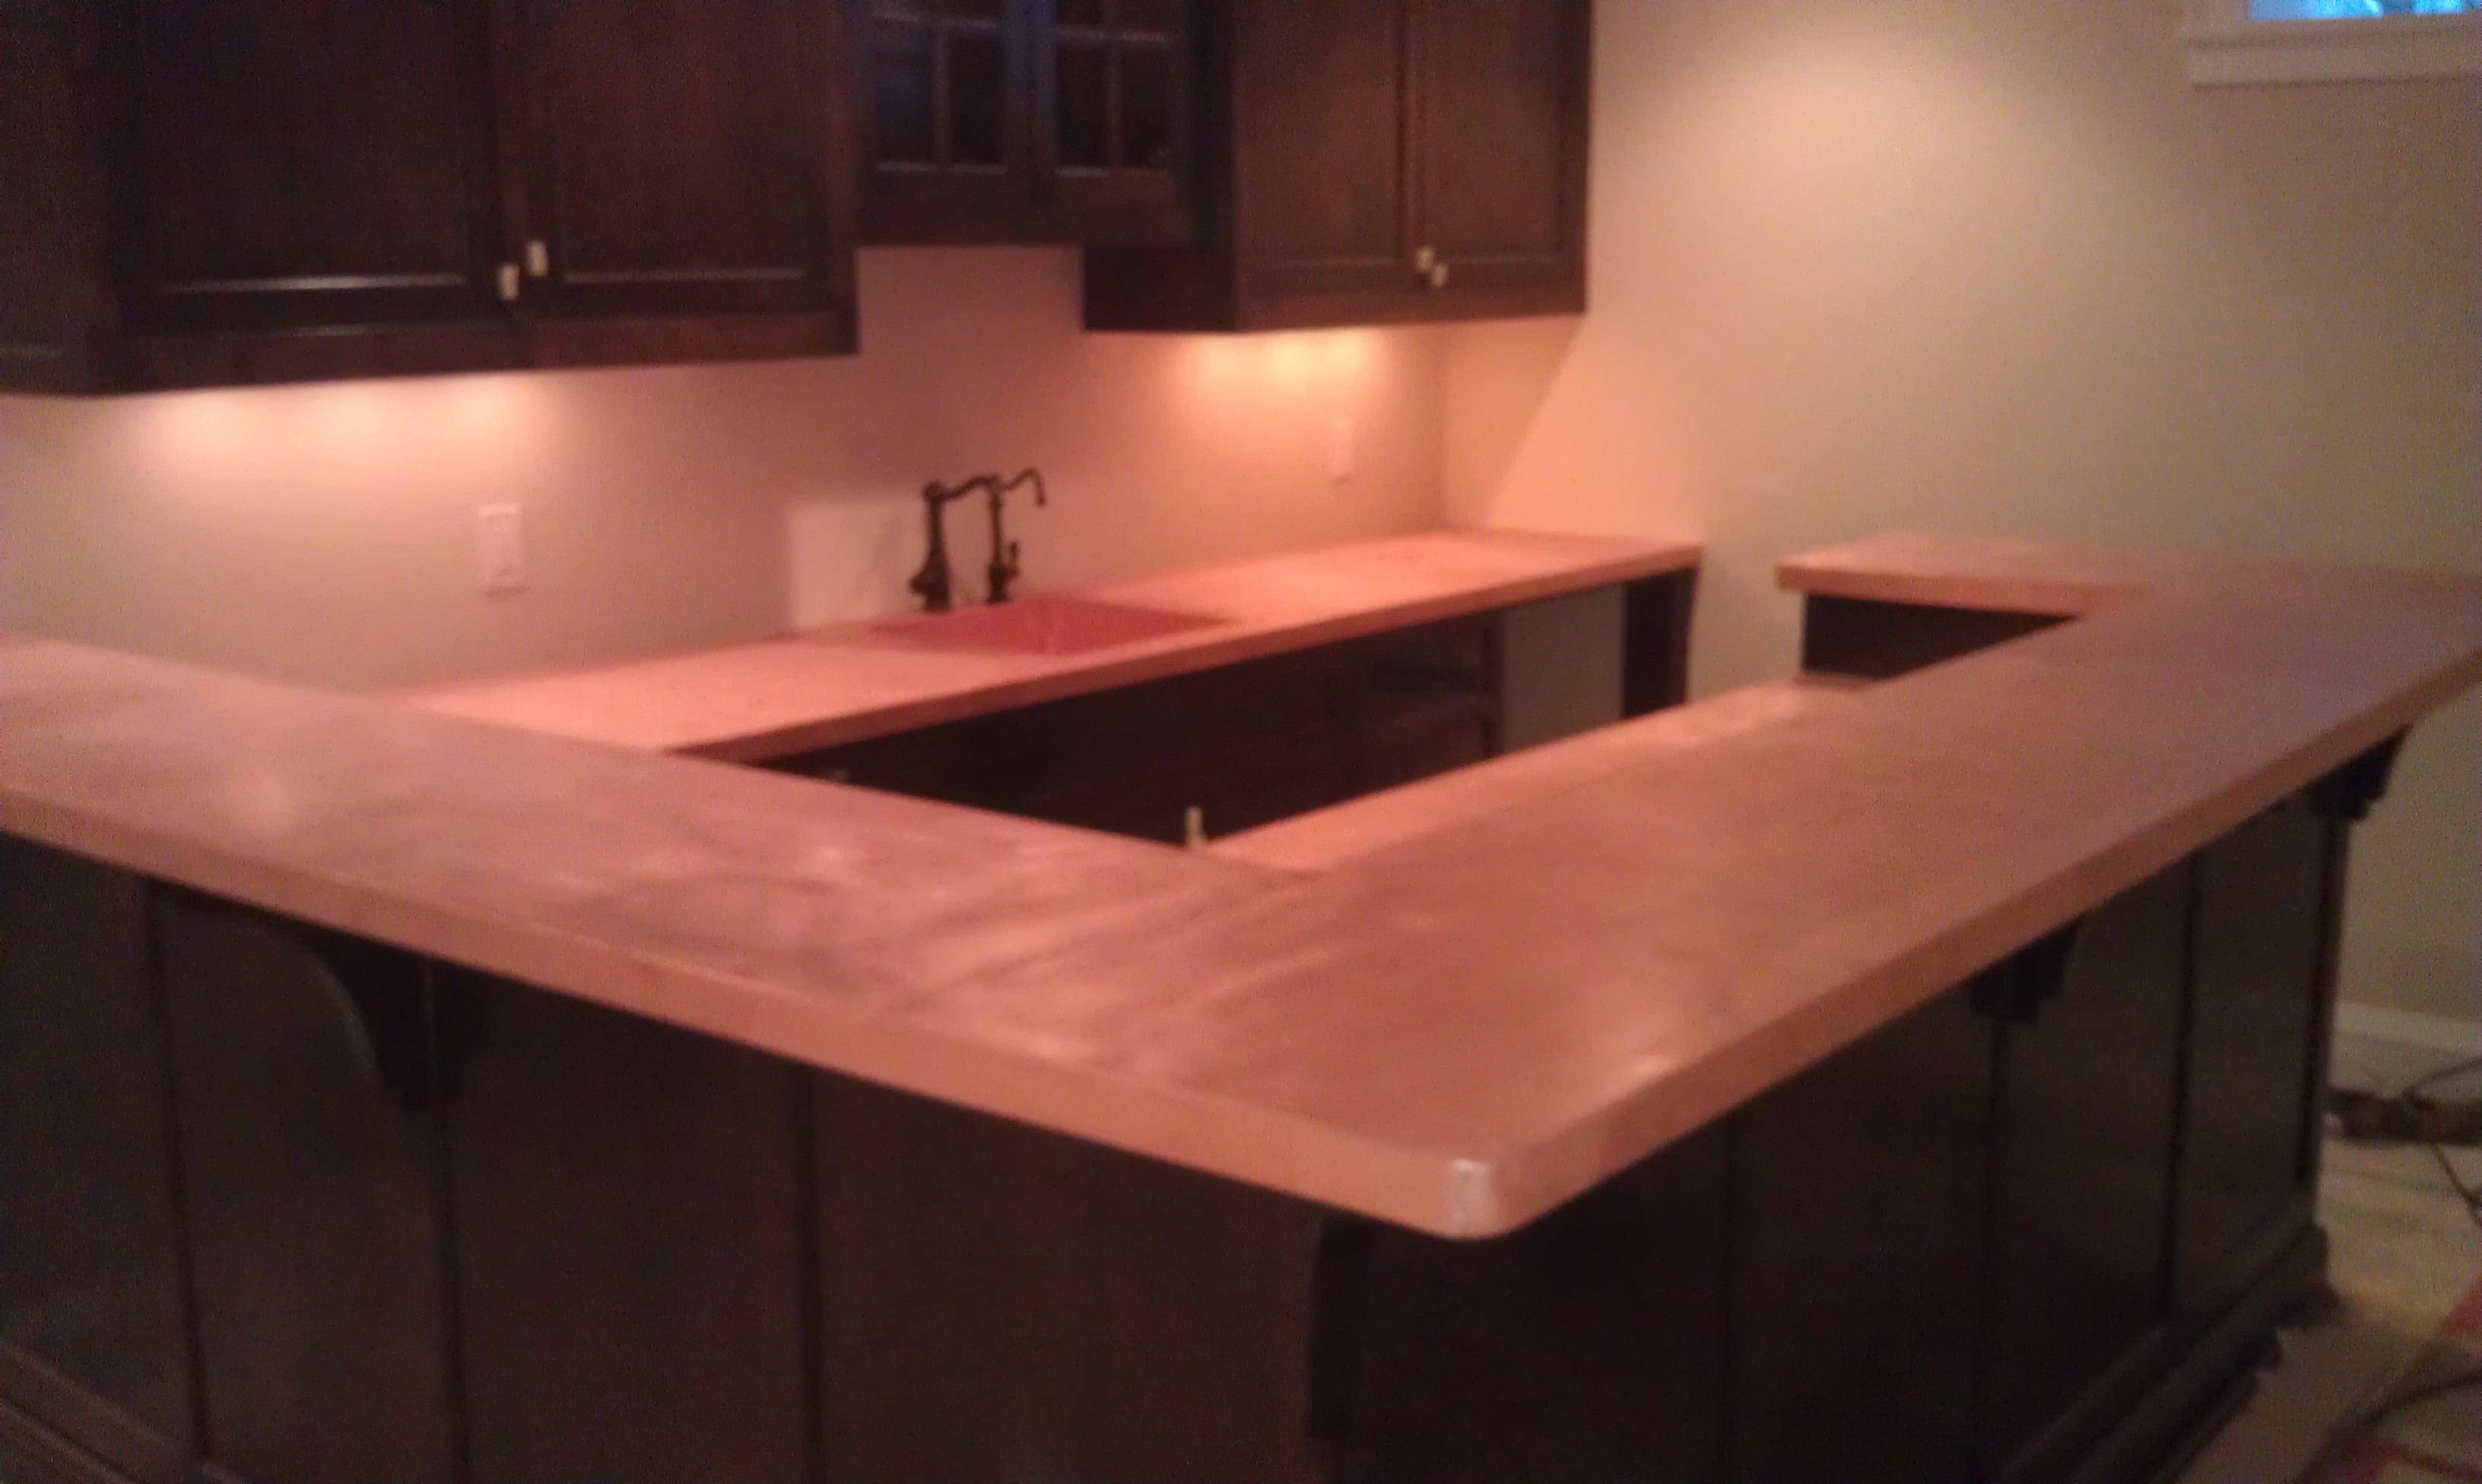 minnesota with natural paul material st stonetop veining counters projects concrete minneapolis countertops inlay remodel countertop copper stone kitchens kitchen complements custom surfaces best